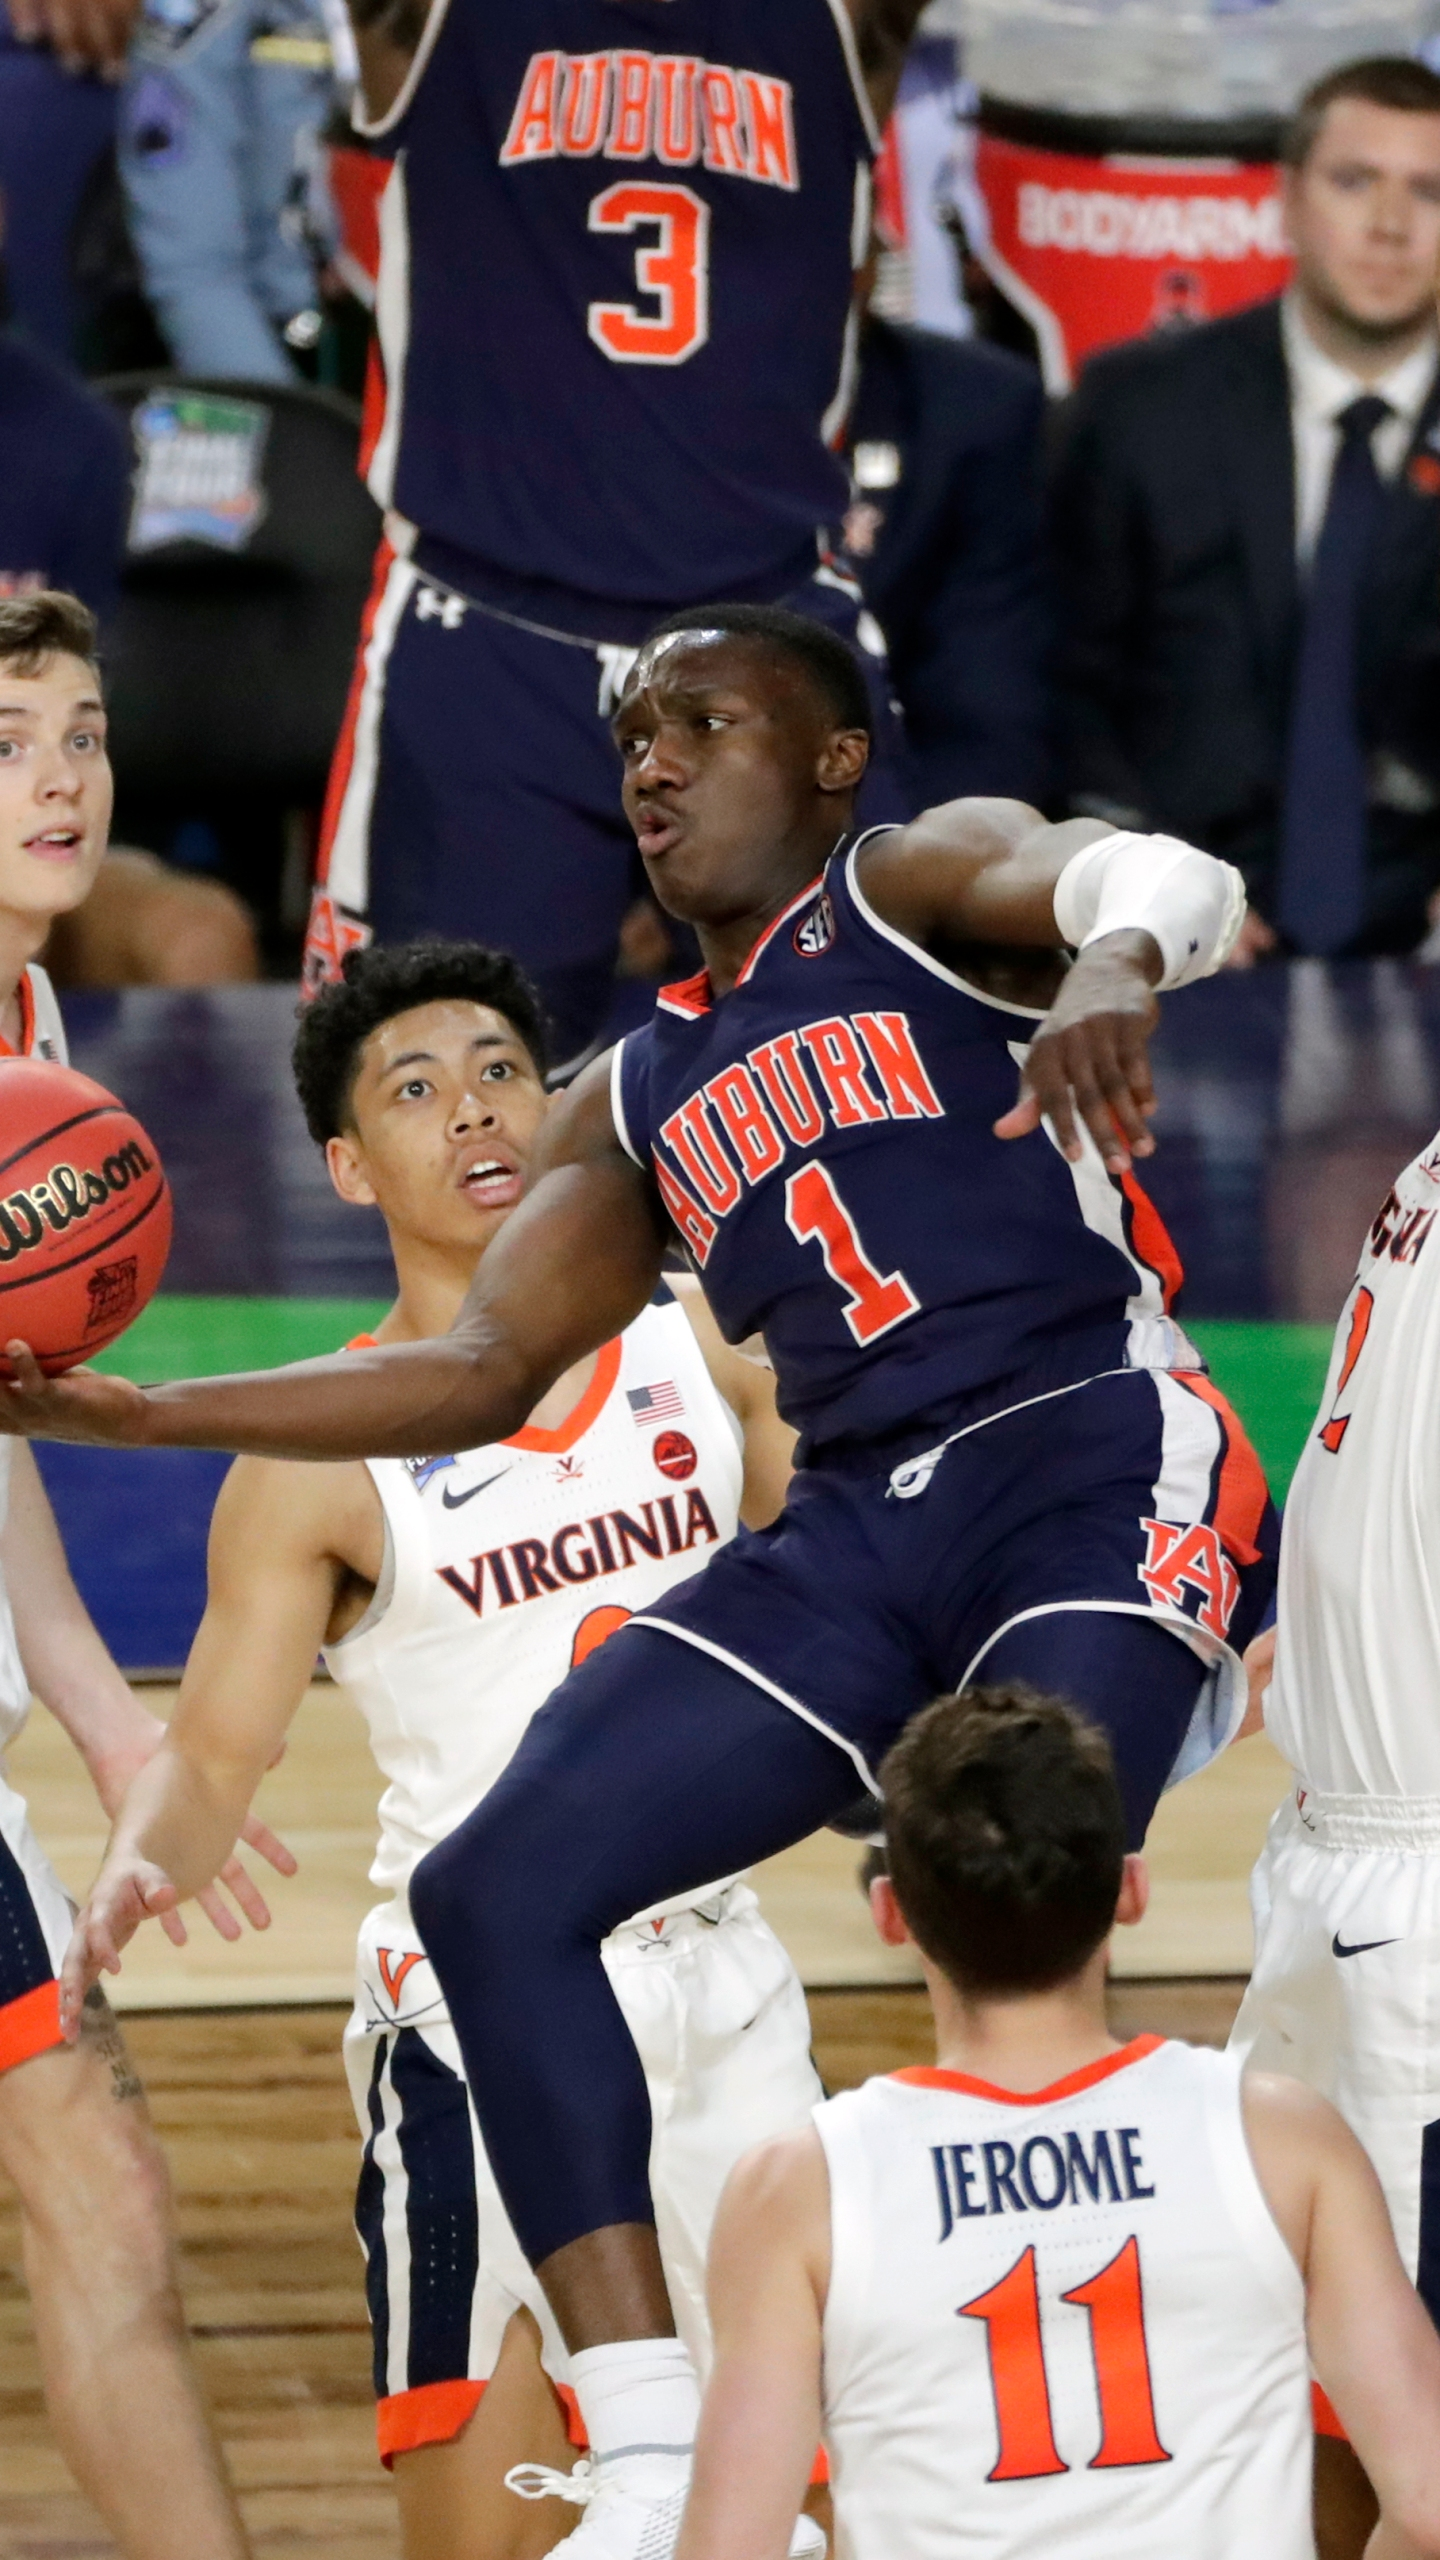 Final_Four_Auburn_Virginia_Basketball_89140-159532.jpg86789786